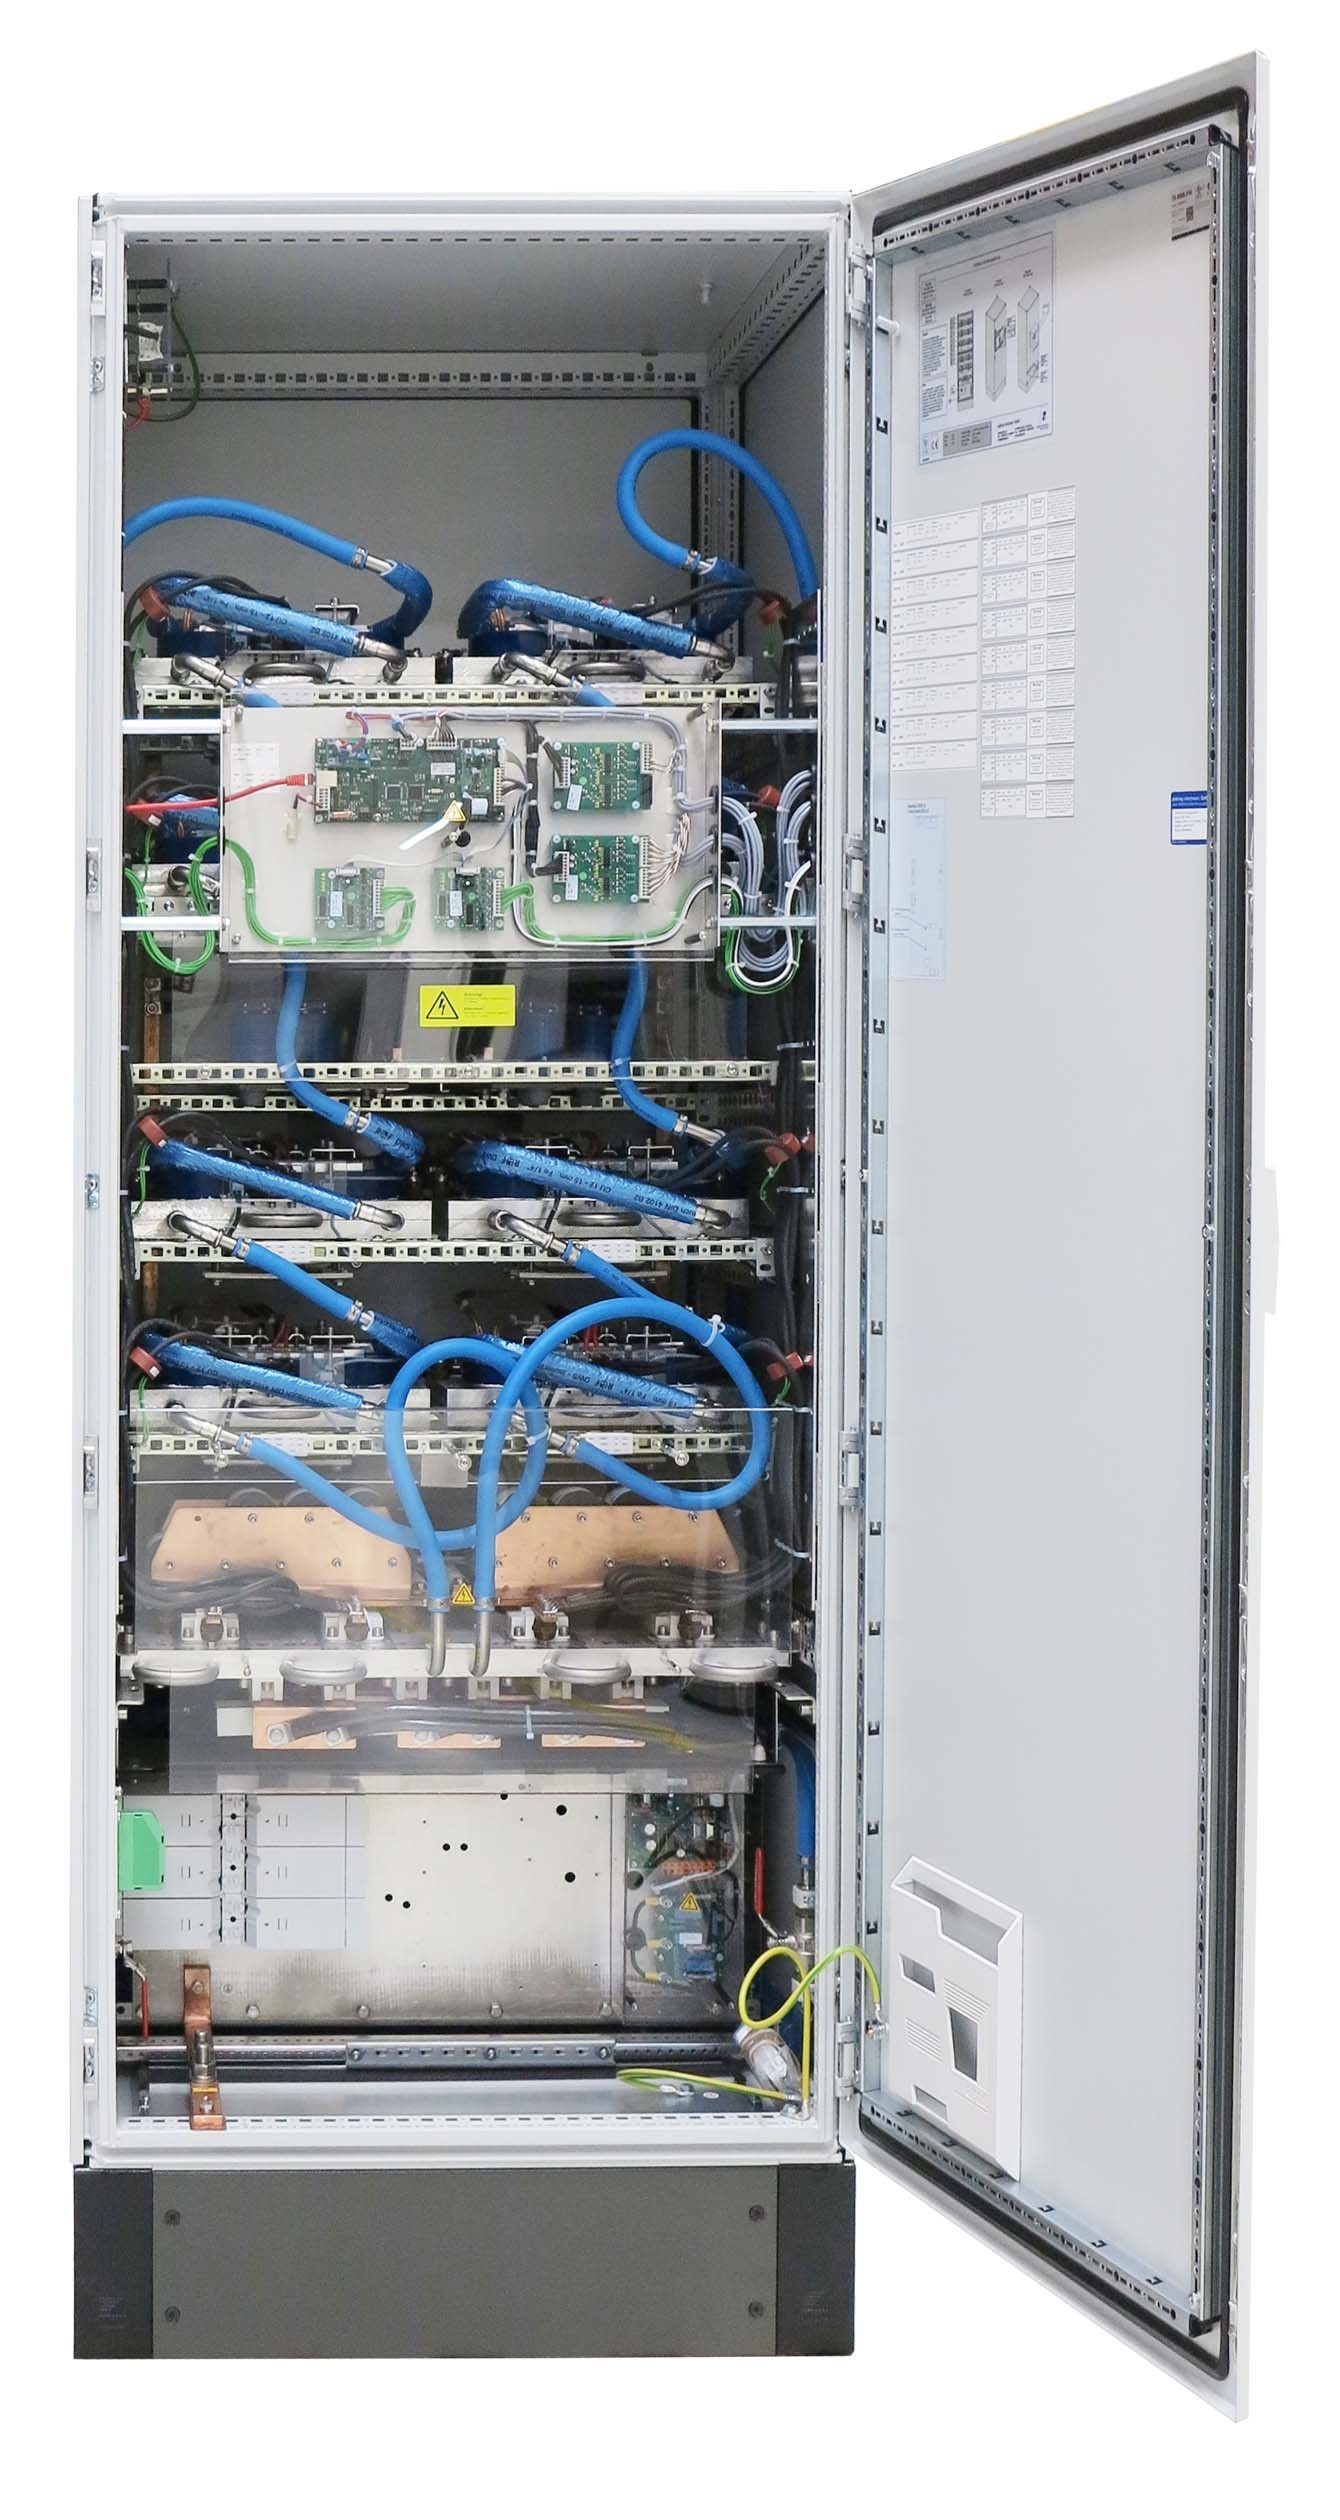 EPS/HC 5000-WCL DC Current Source 30 - 200 kW